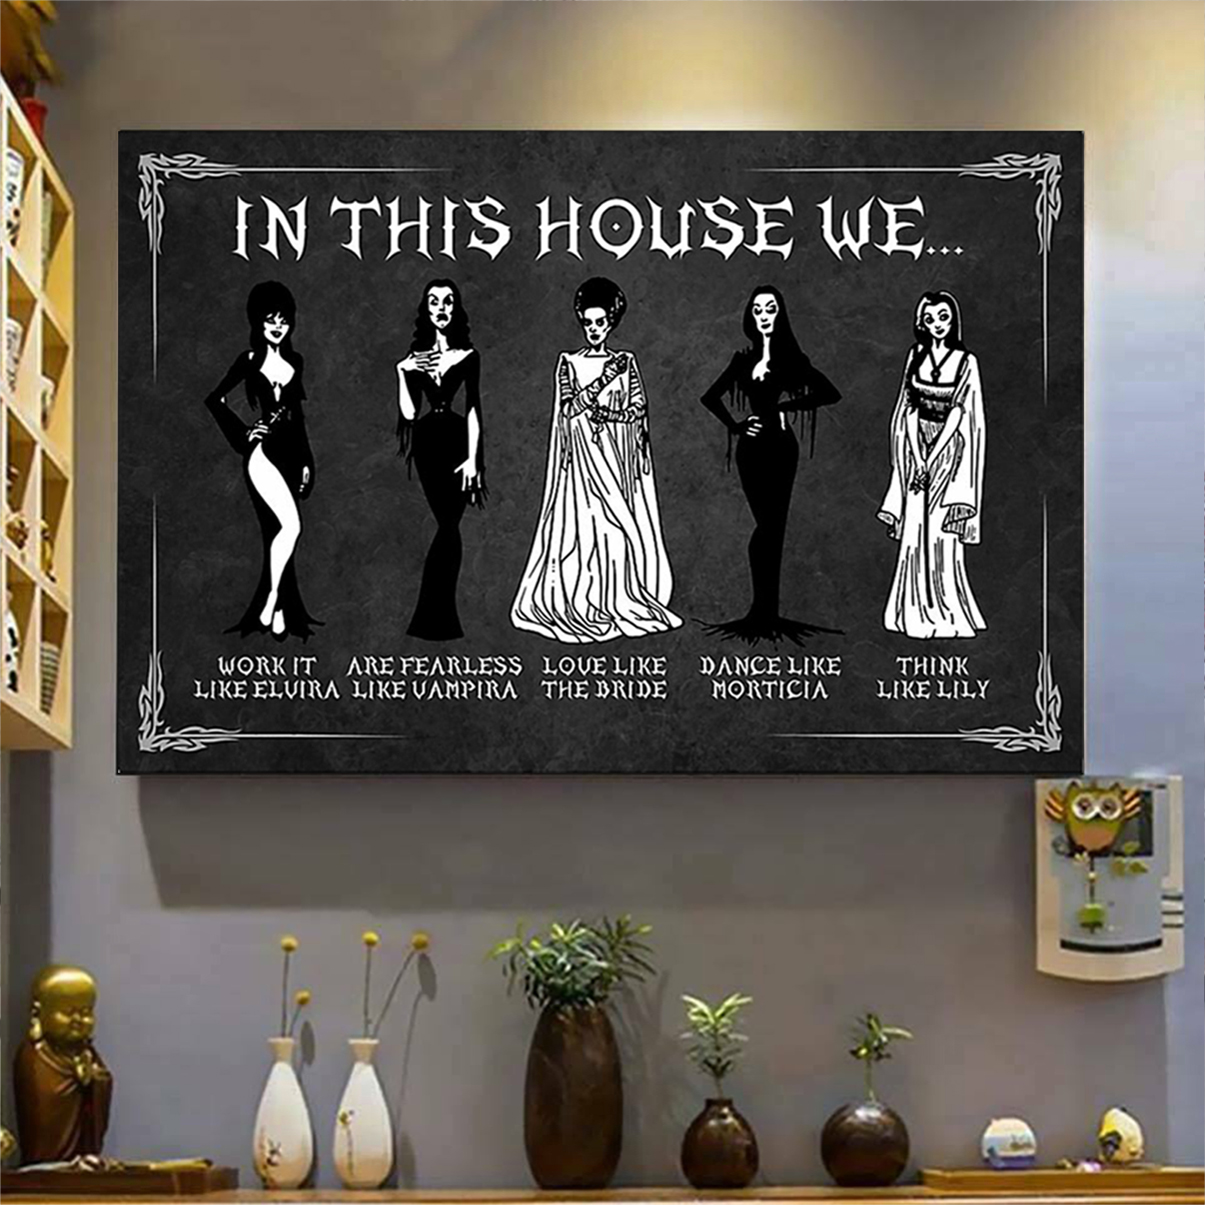 In this house we work like elvira poster A3